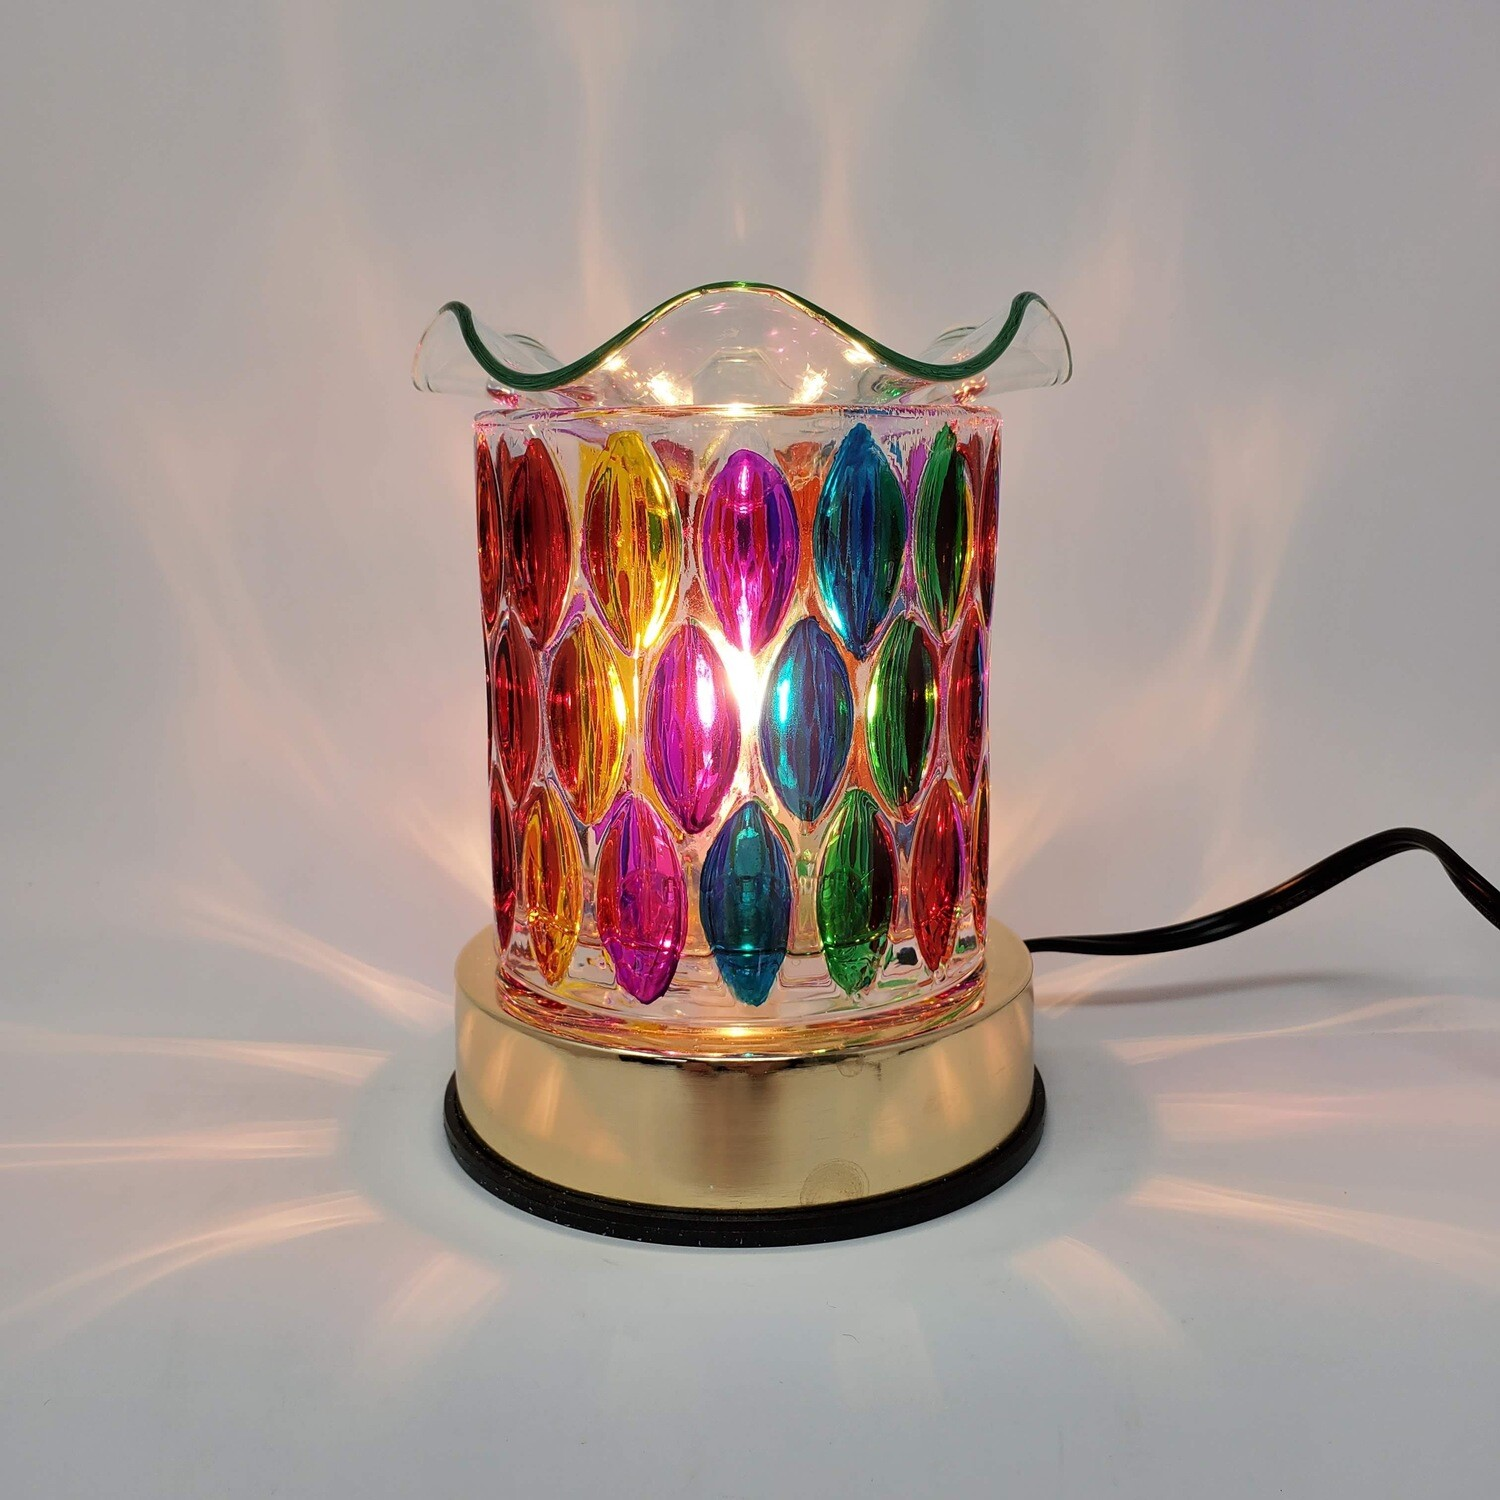 RAINBOW OVALS TOUCH LAMP